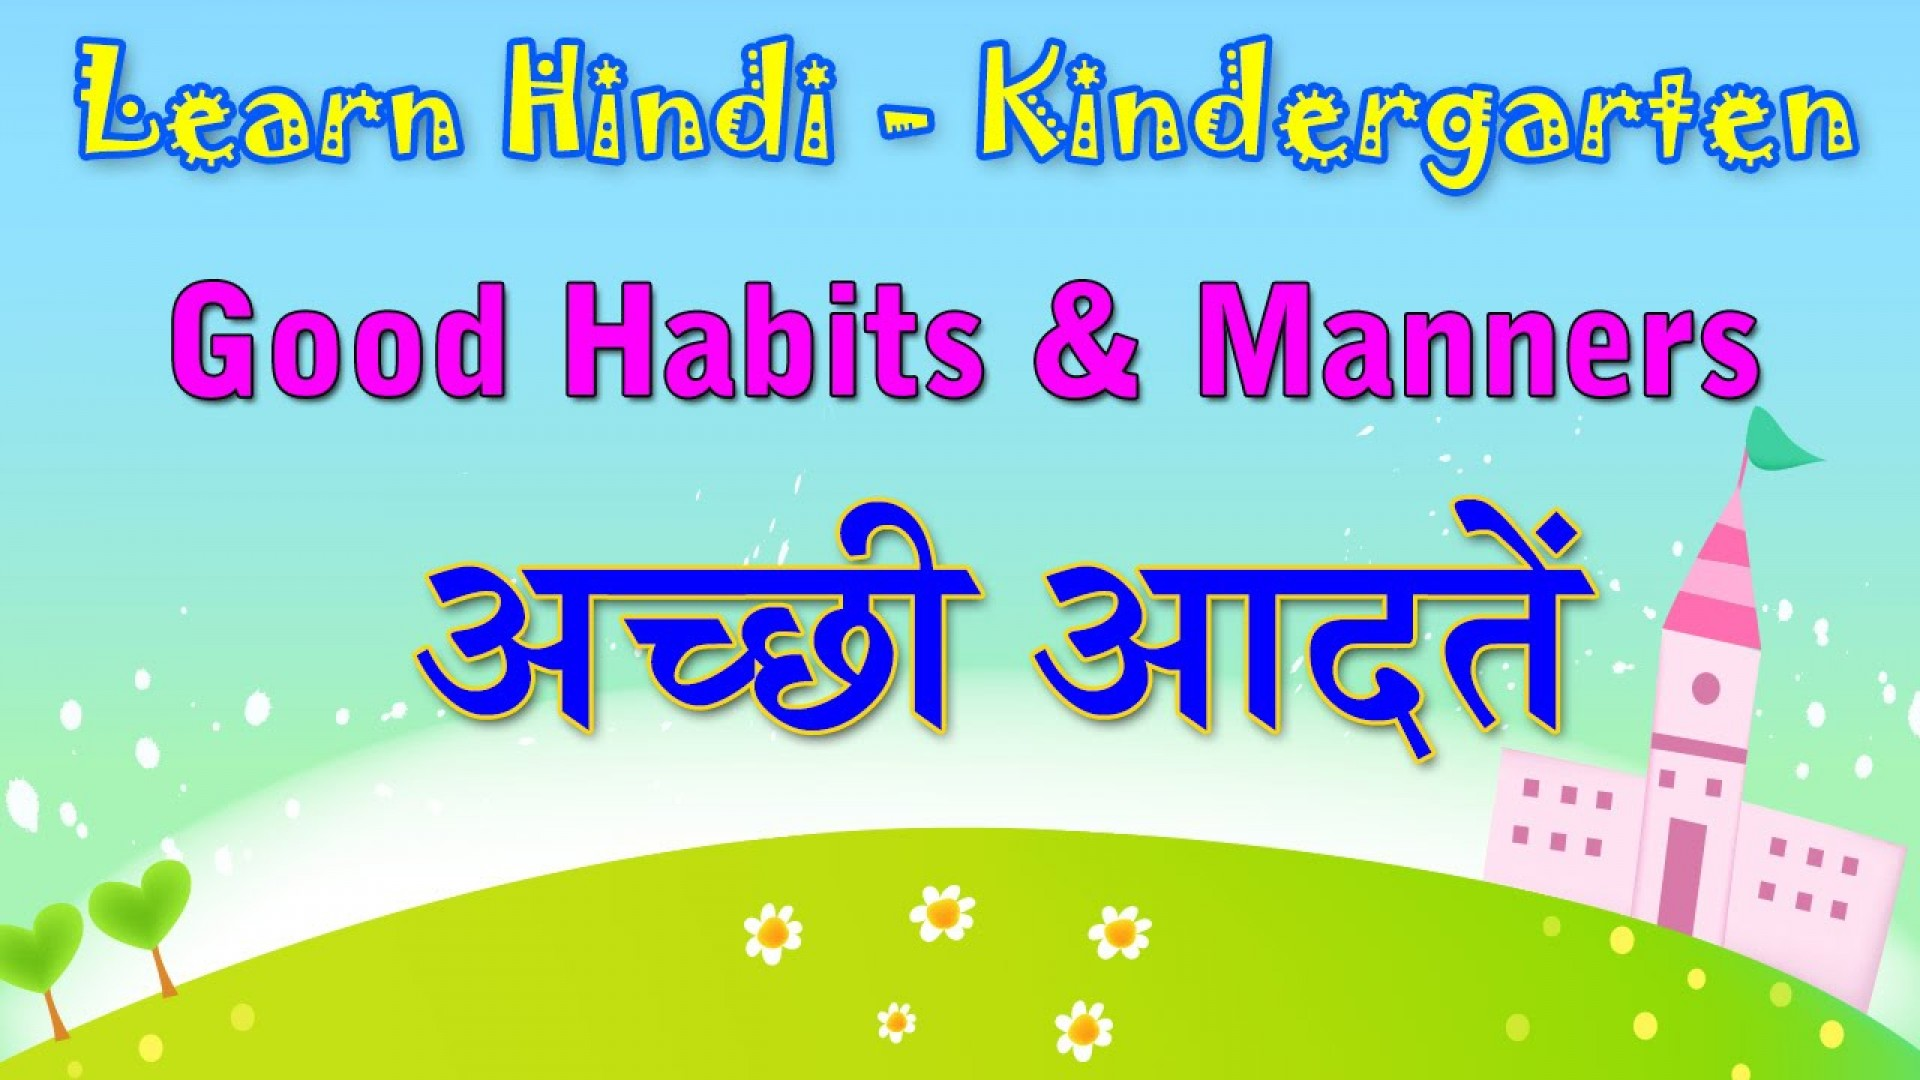 004 Essay Example Good Habits In Hindi Exceptional Bad Eating Habit 1920